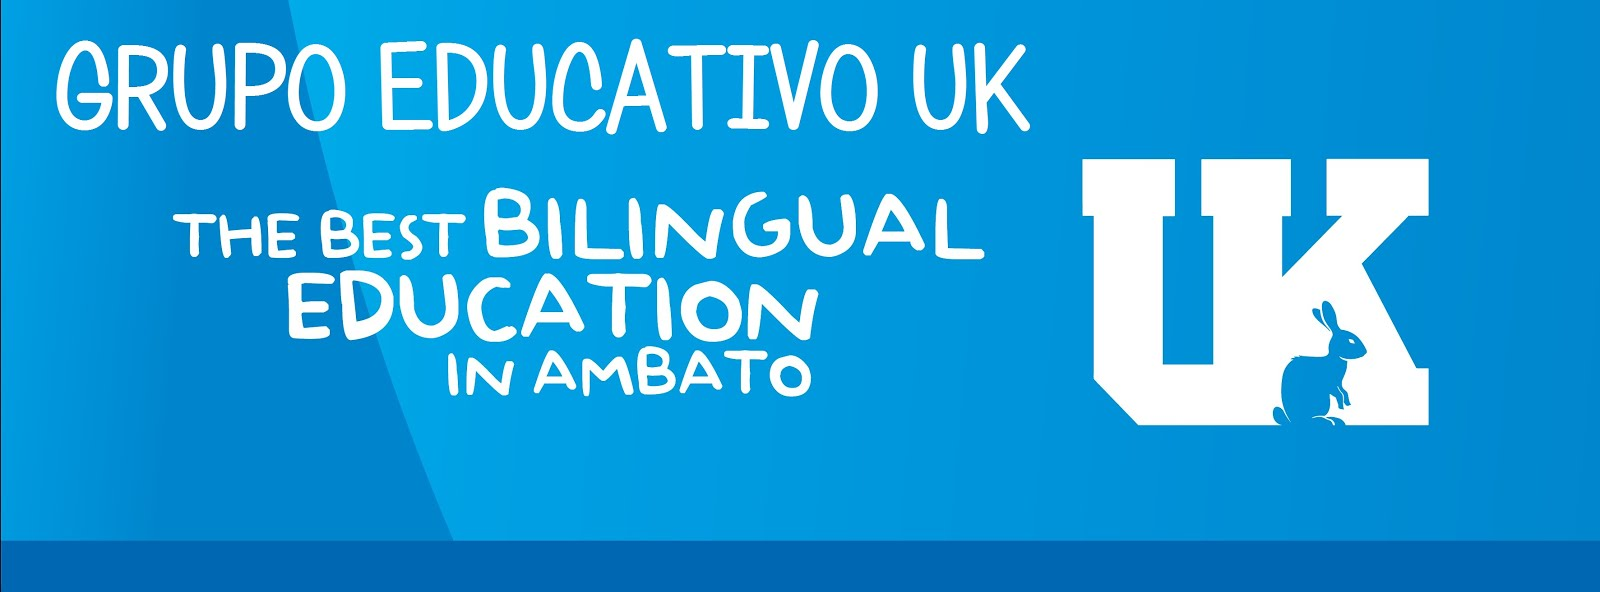 Grupo Educativo UK